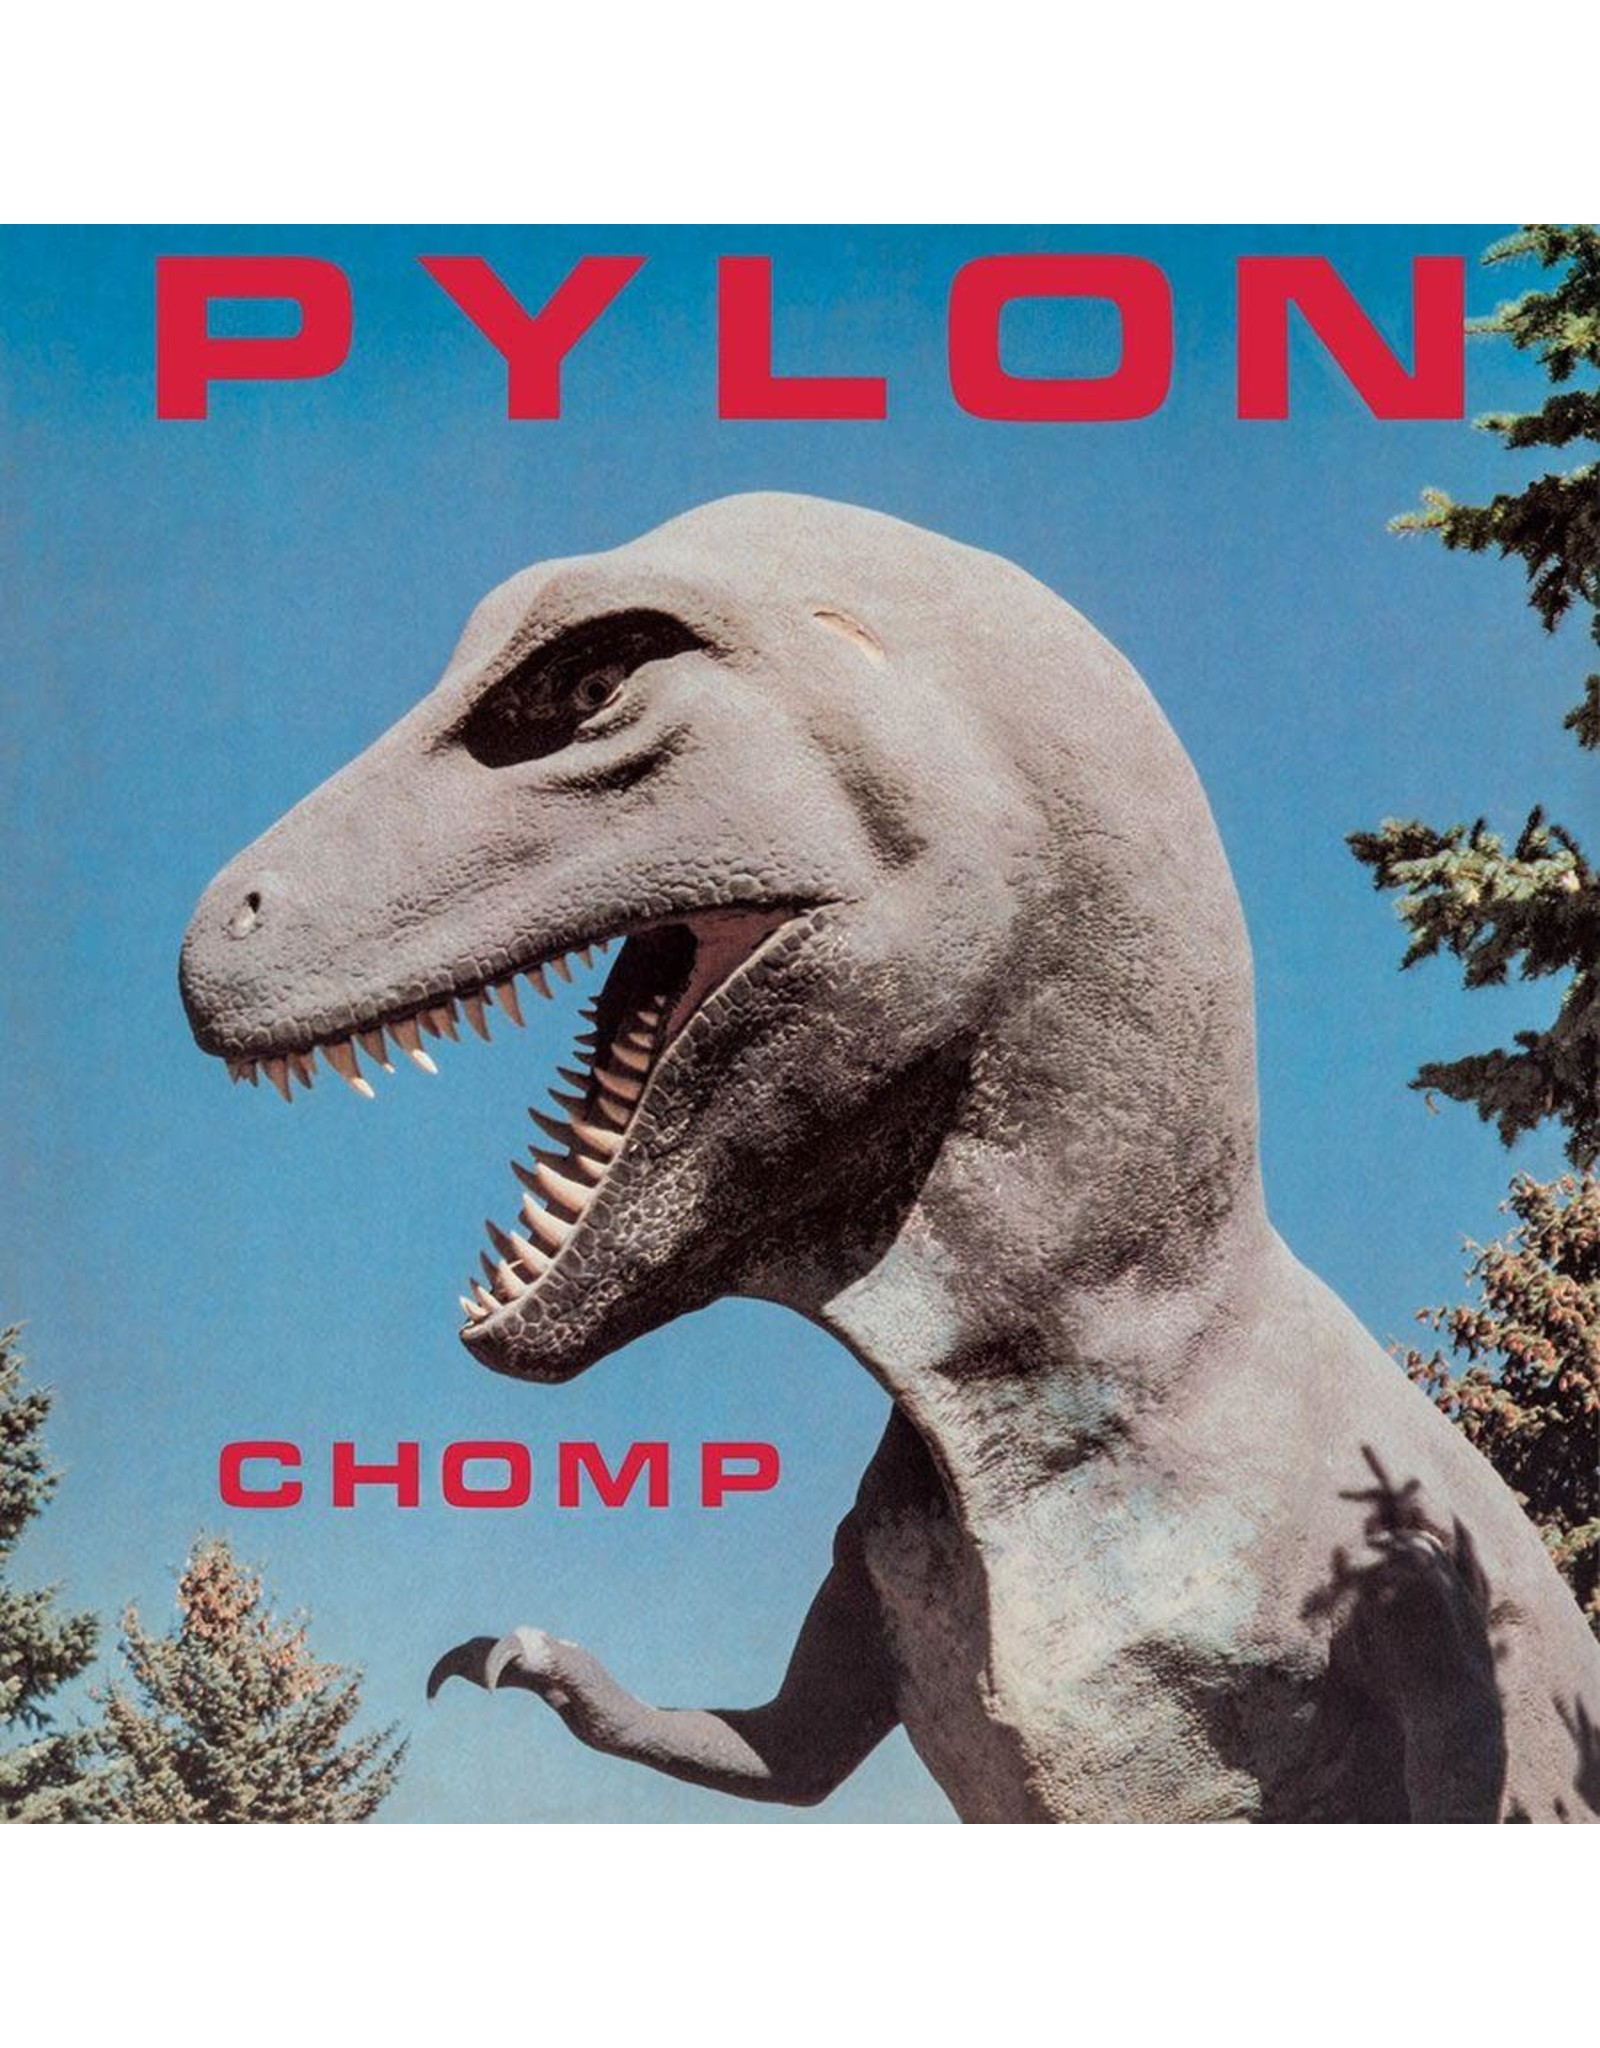 Pylon - Chomp (Coloured) LP